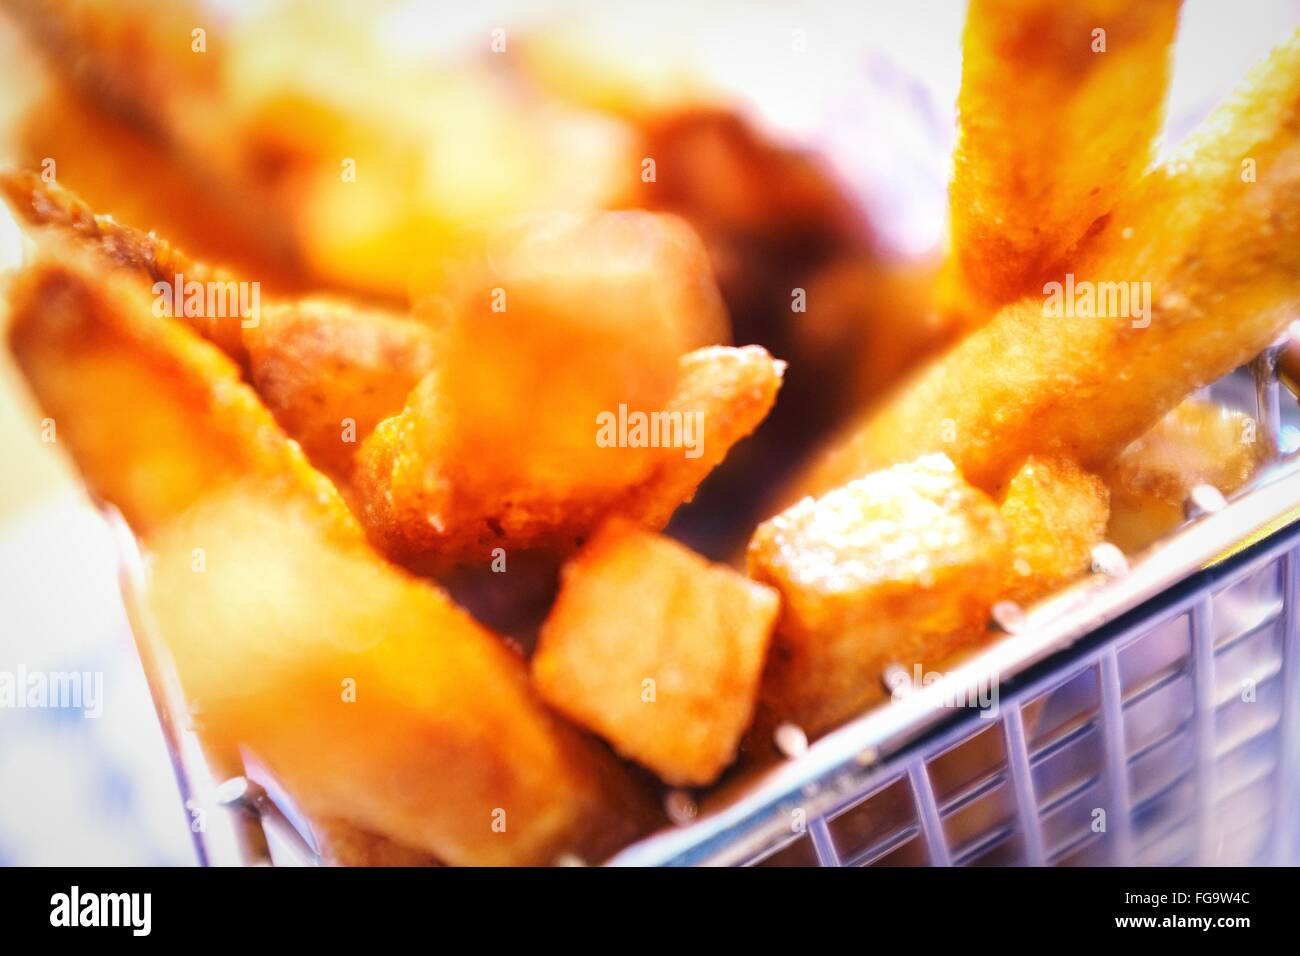 Close-Up Of French Fries In Container - Stock Image